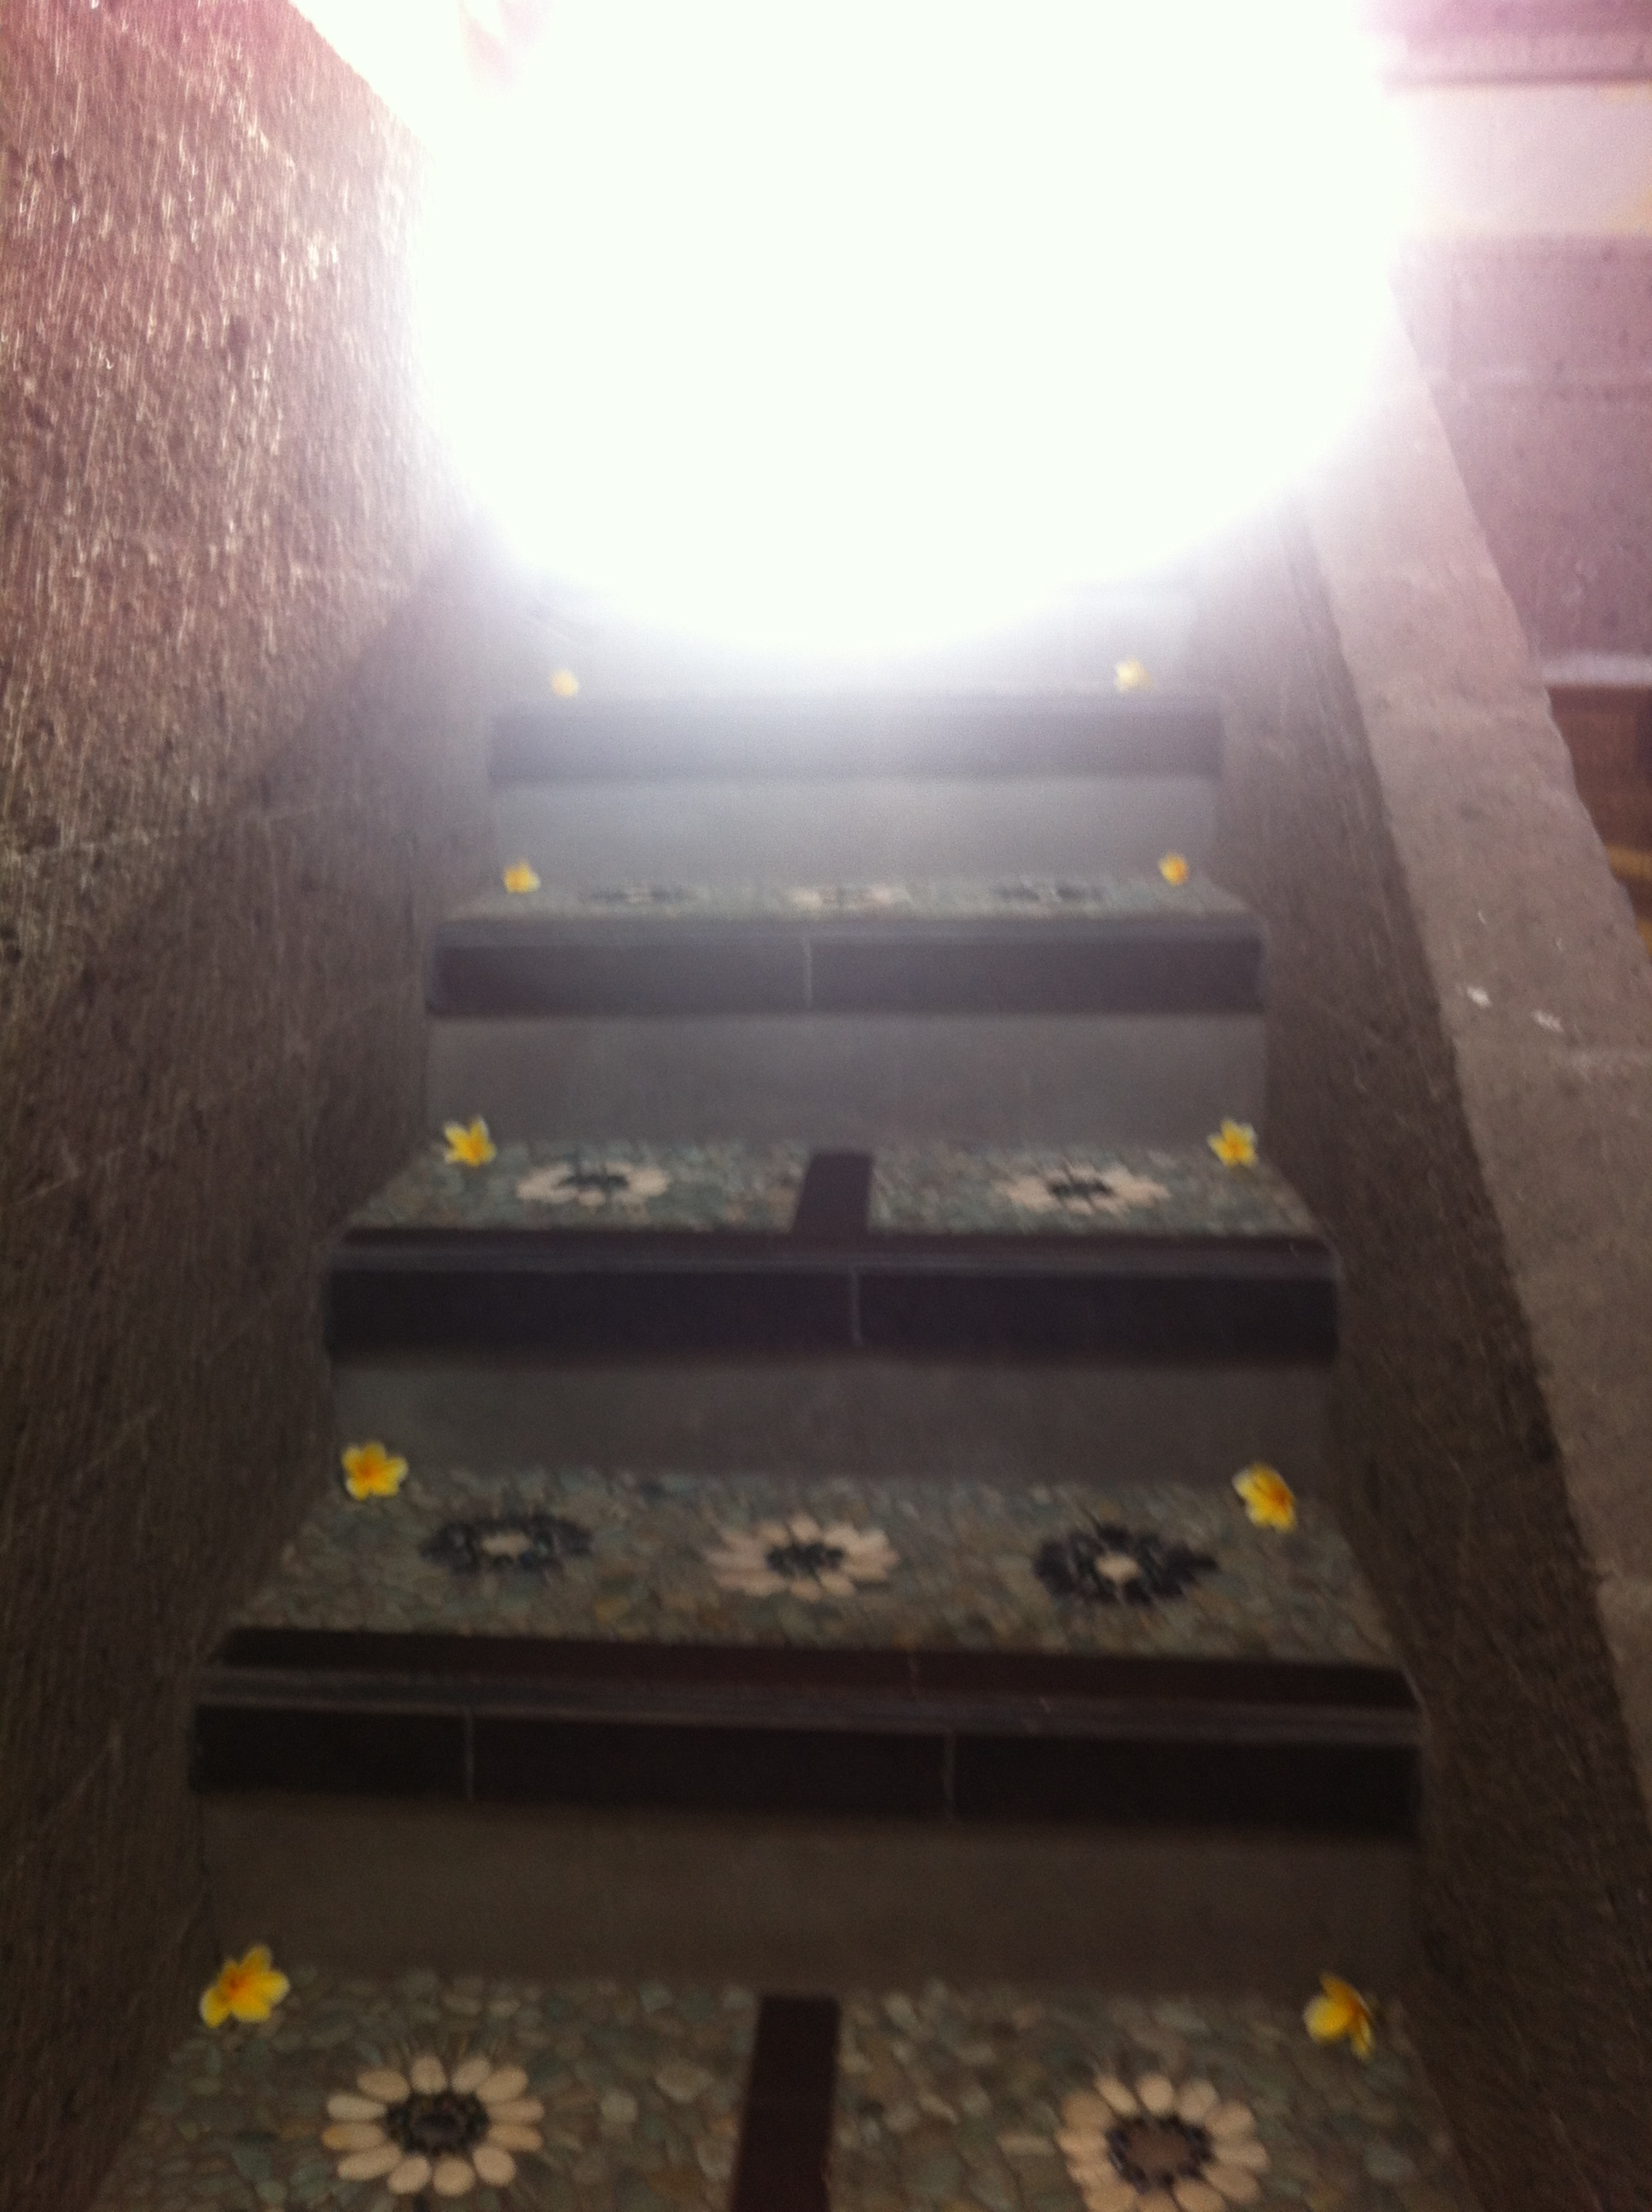 Stairs up to our Yoga room. The beautiful staff at Ubud Aurora, placed the flowers here for our 7am classes.